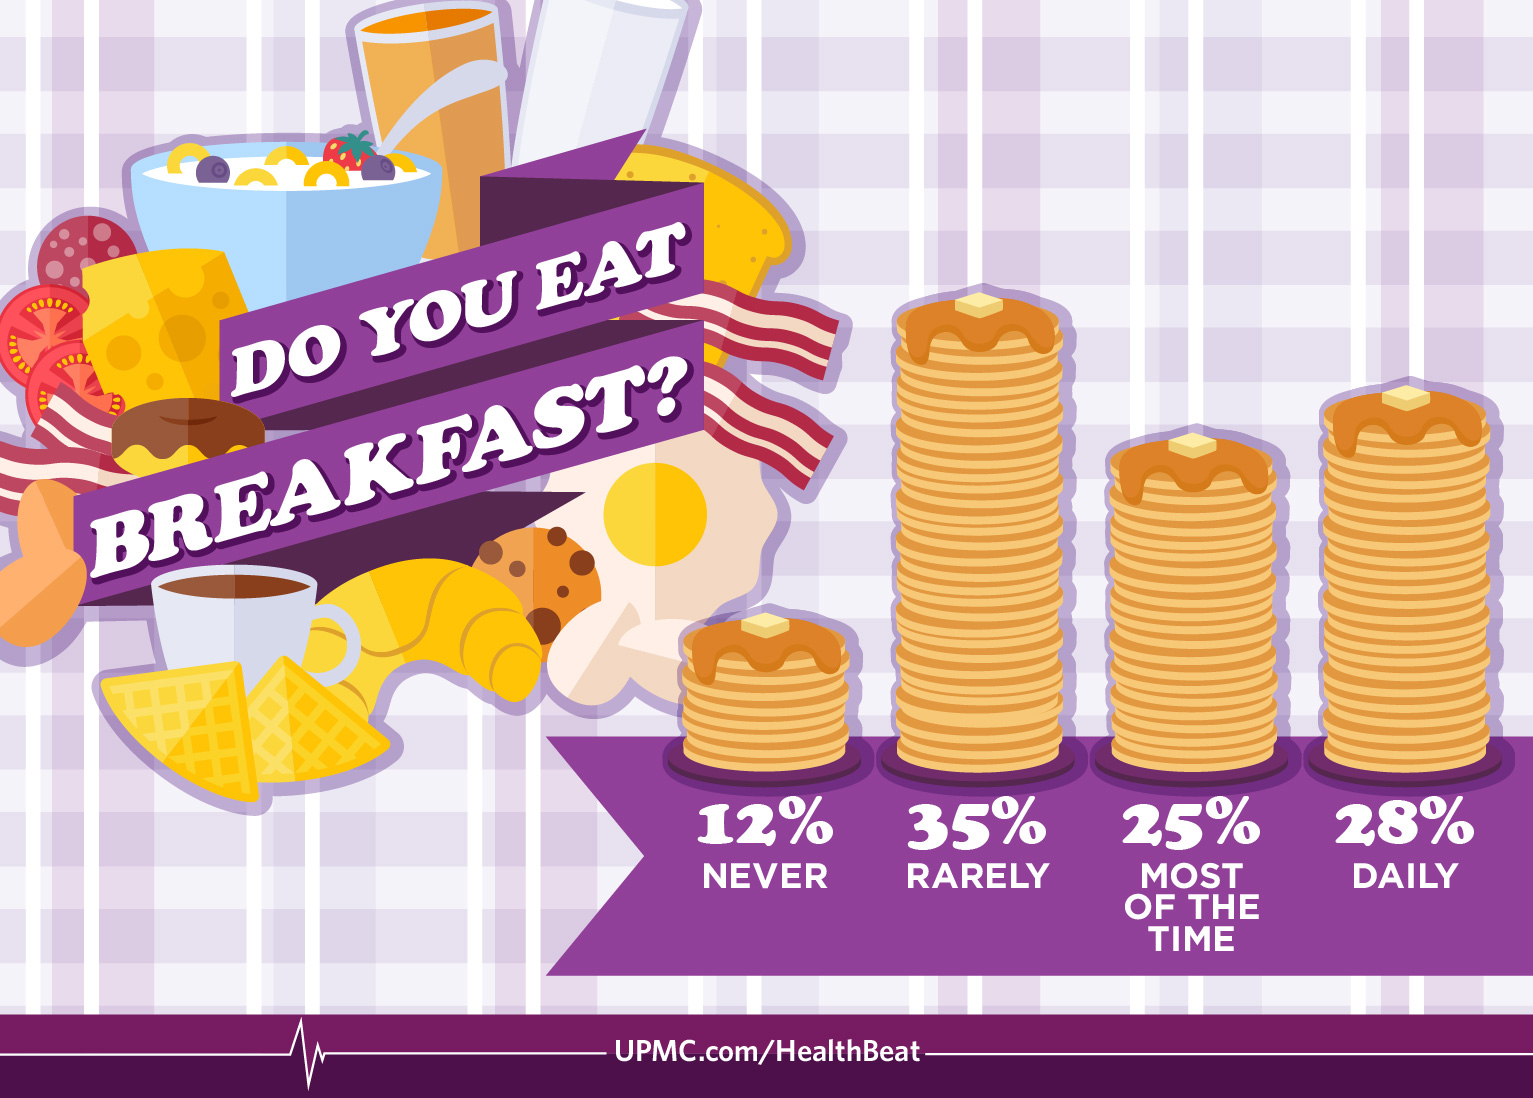 Find out why breakfast is the most important meal of the day